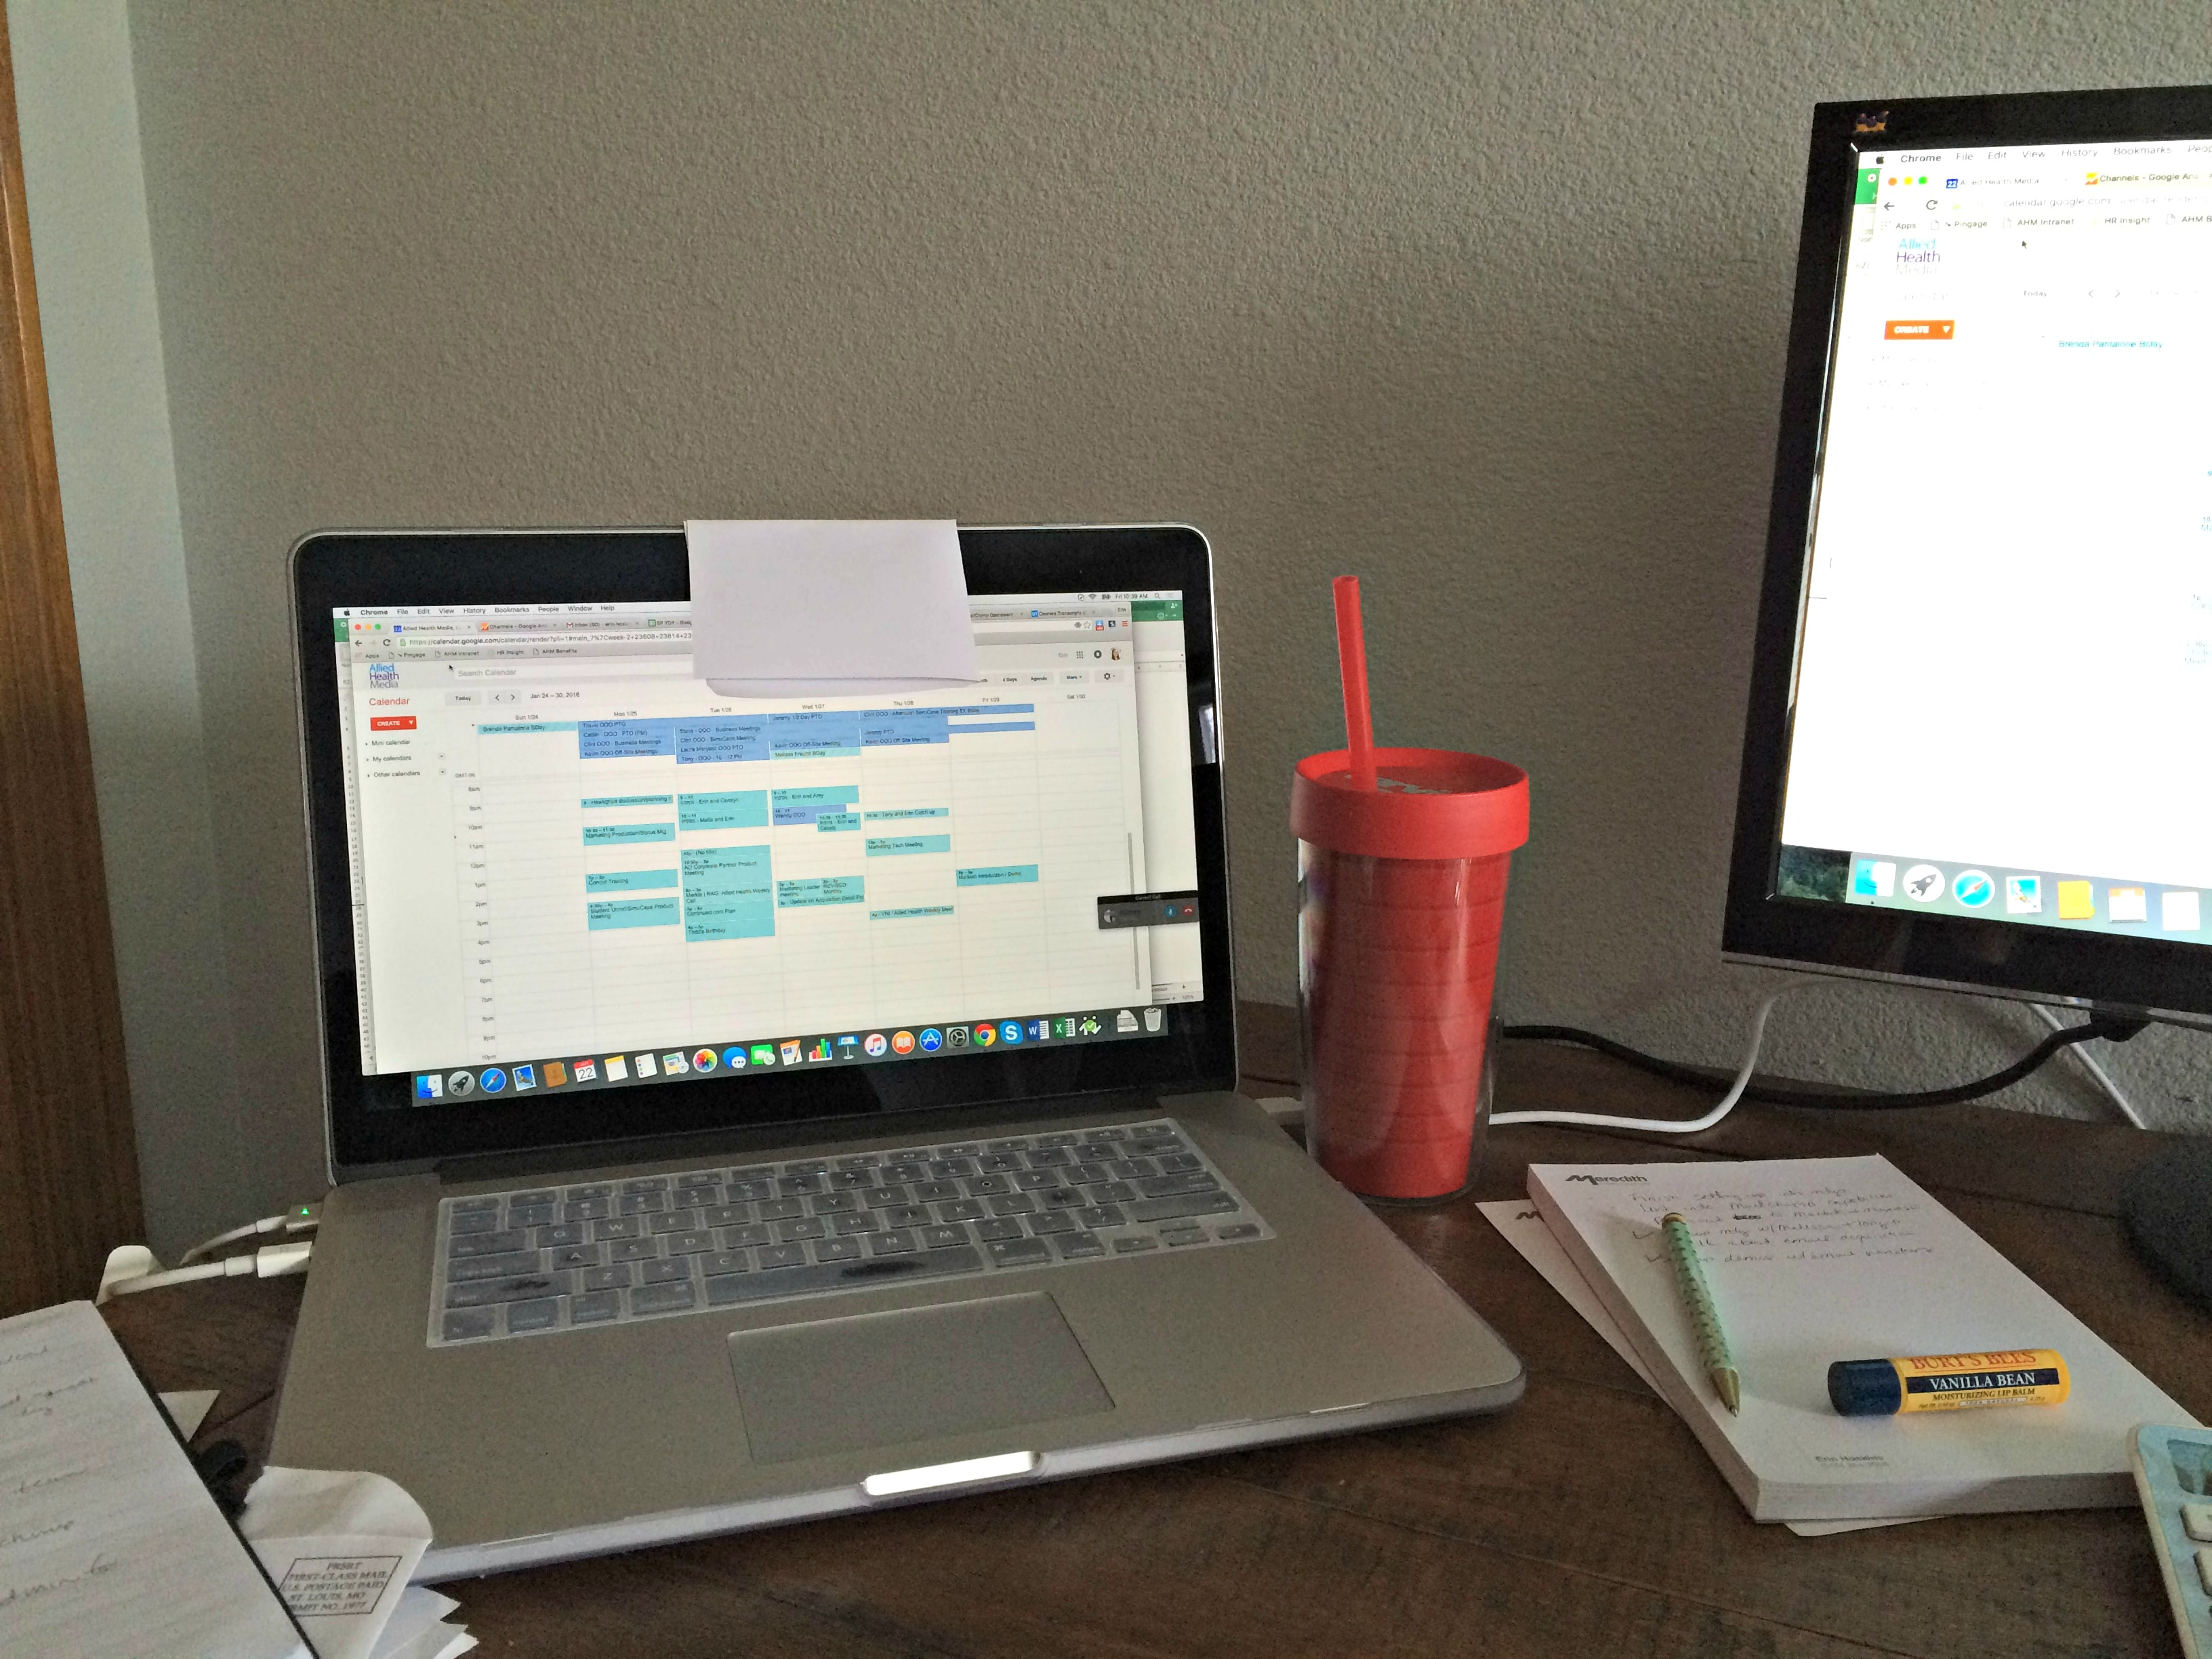 Working from Home: Expectations vs Reality Revealed